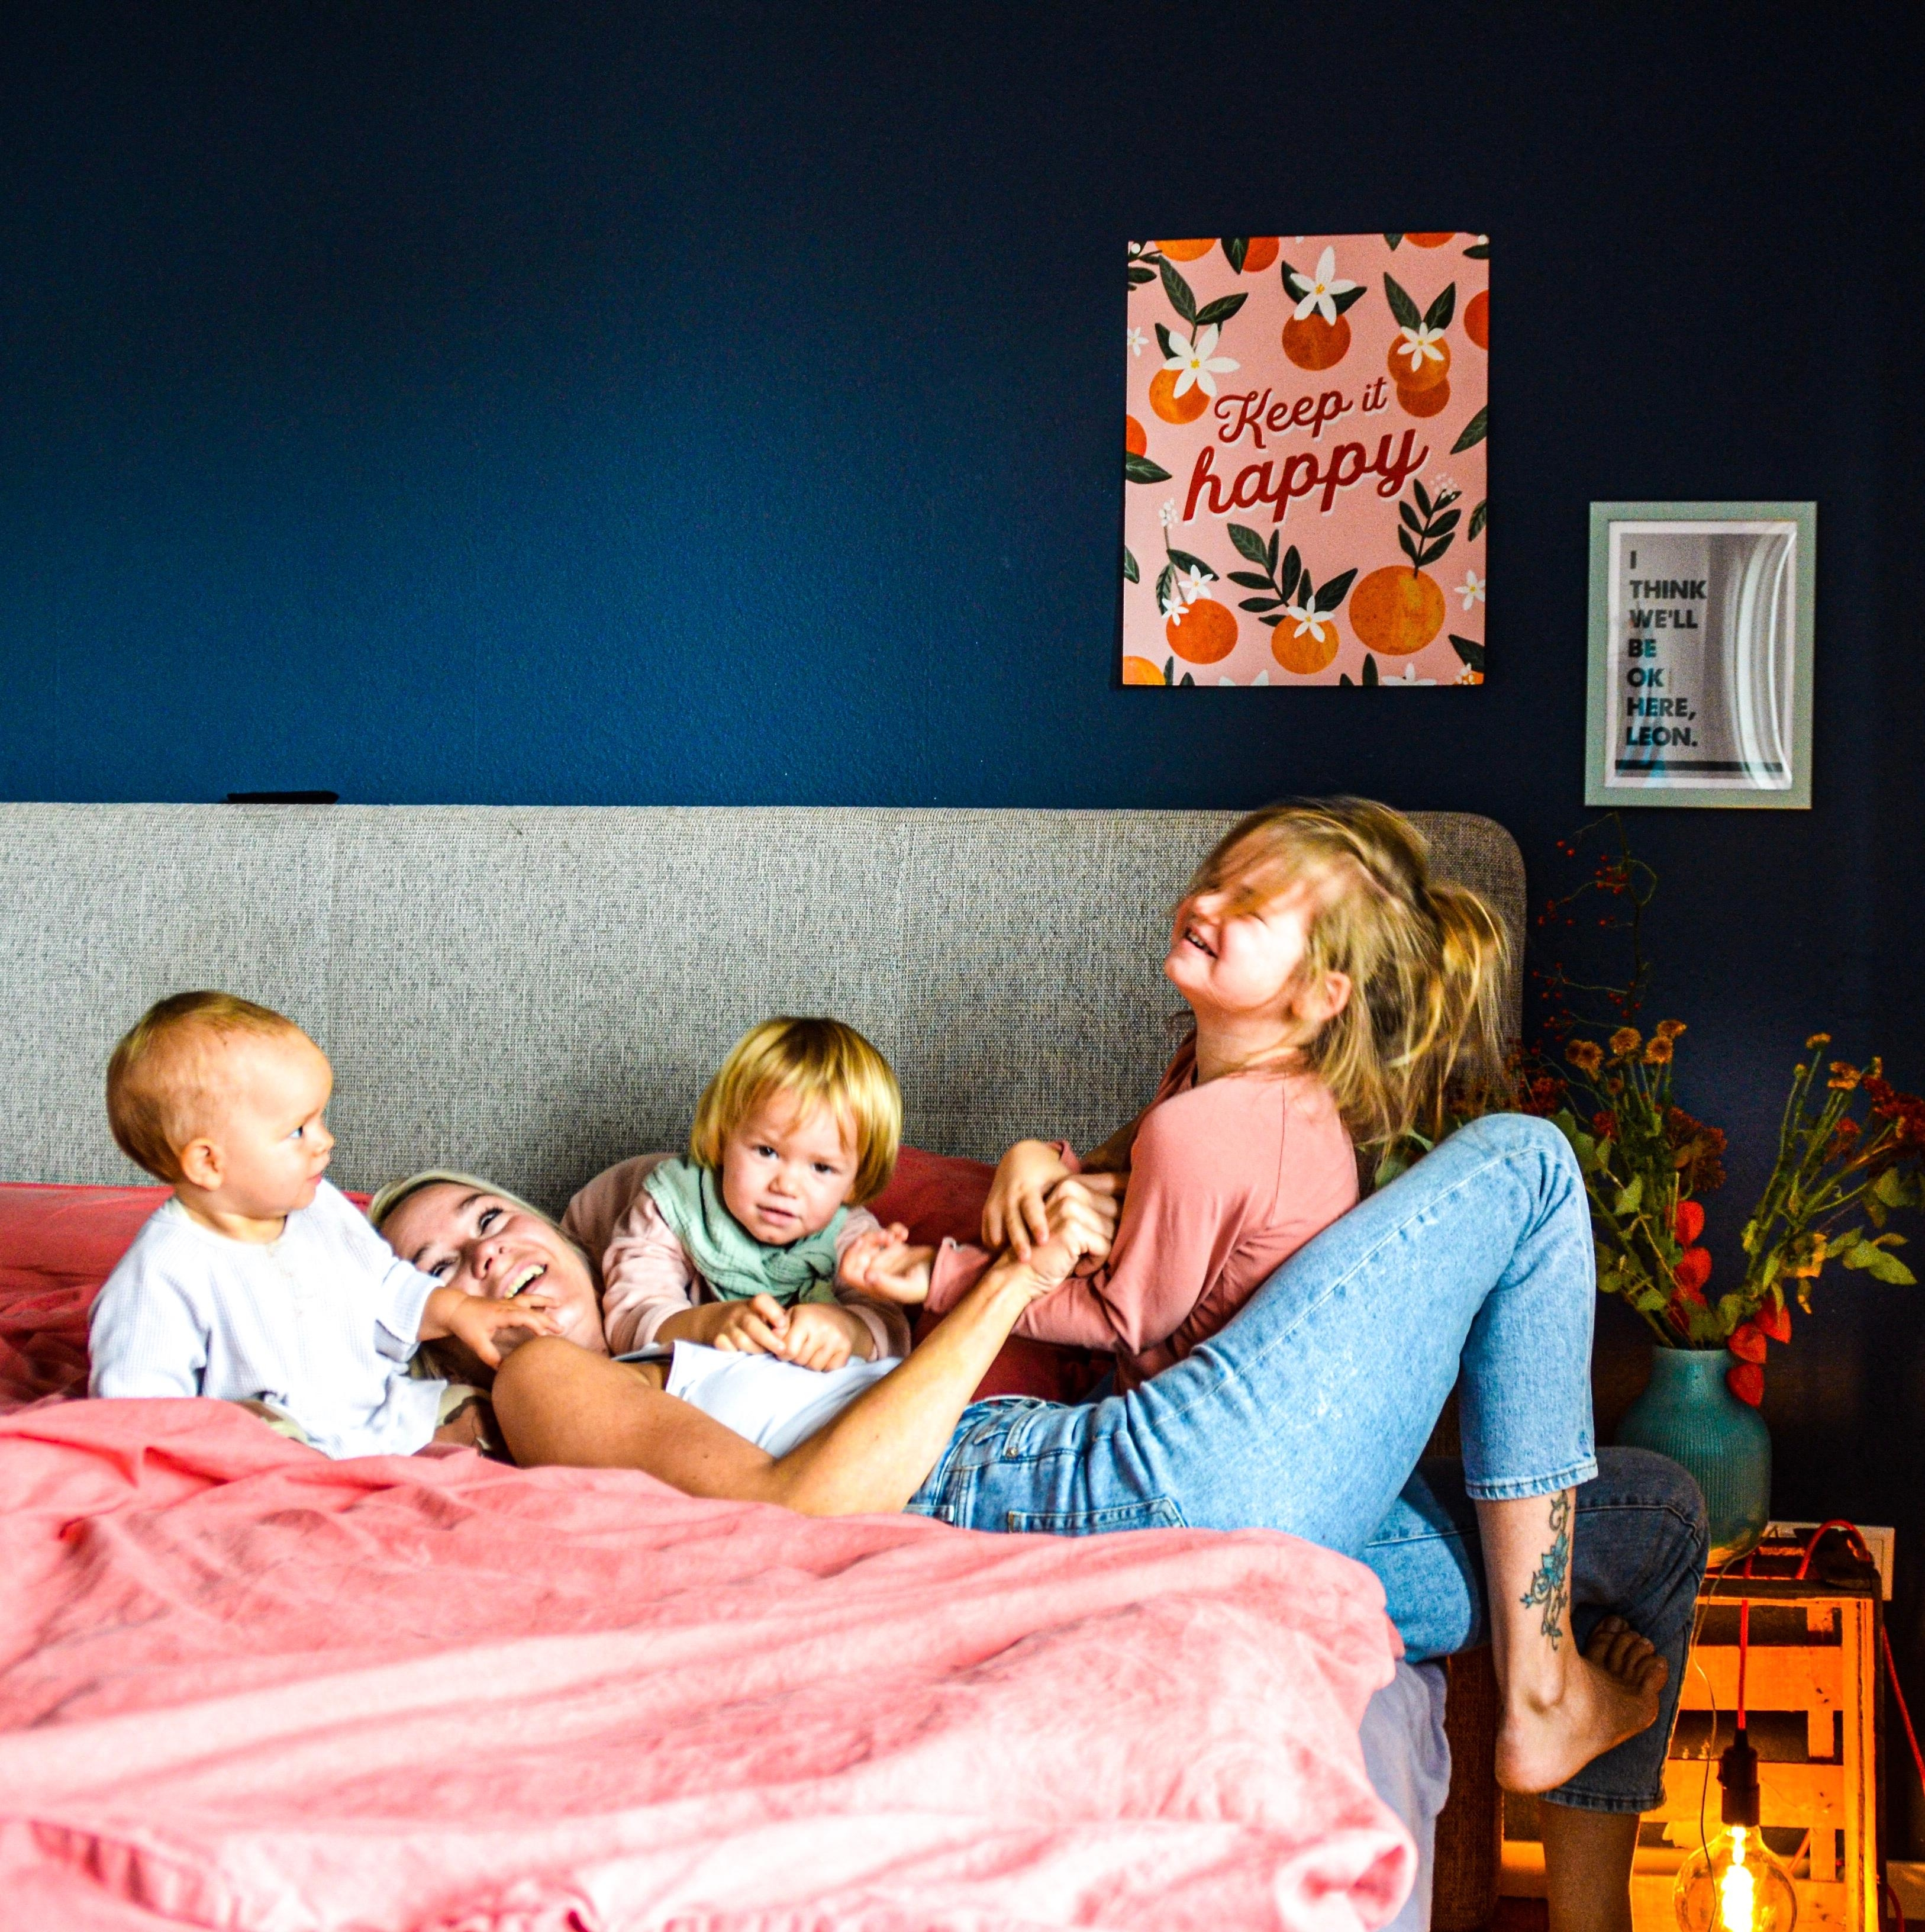 Bedroom lebenmitkindern schlafzimmer cuddles weekendvibes  a5dd1fb9 bd79 41a1 b38b bc53bc2e9e91